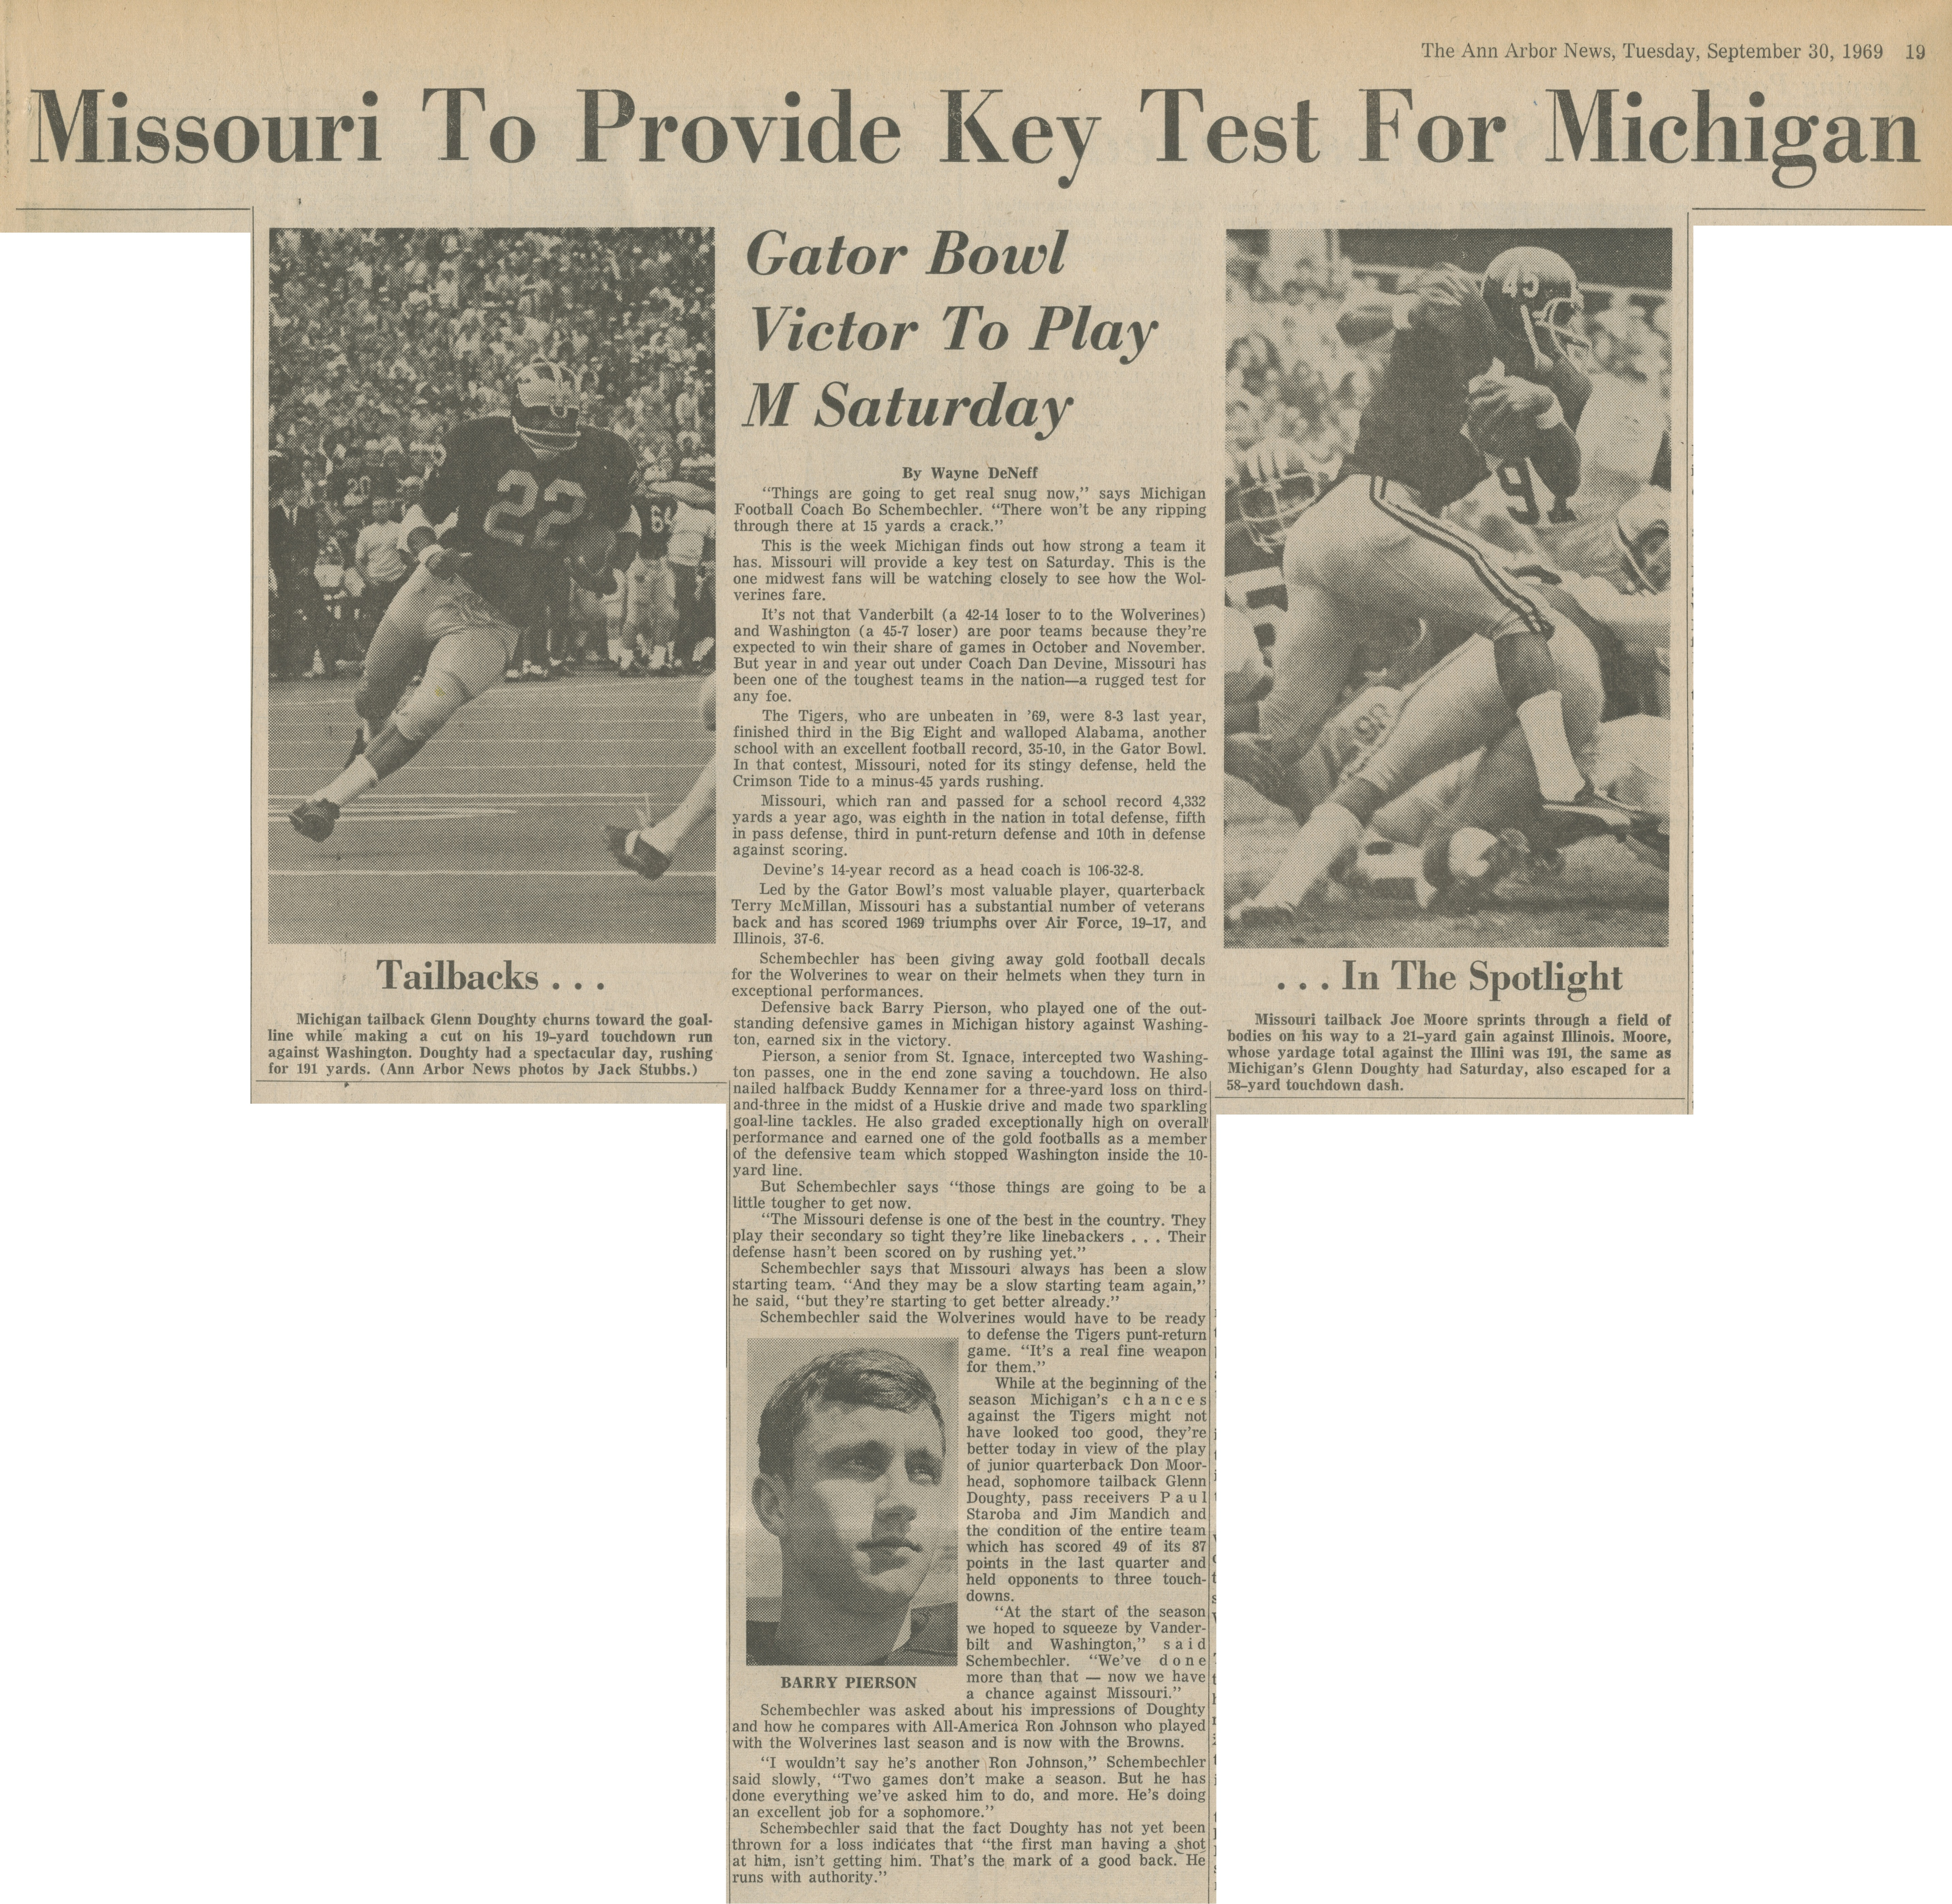 Missouri To Provide Key Test For Michigan image